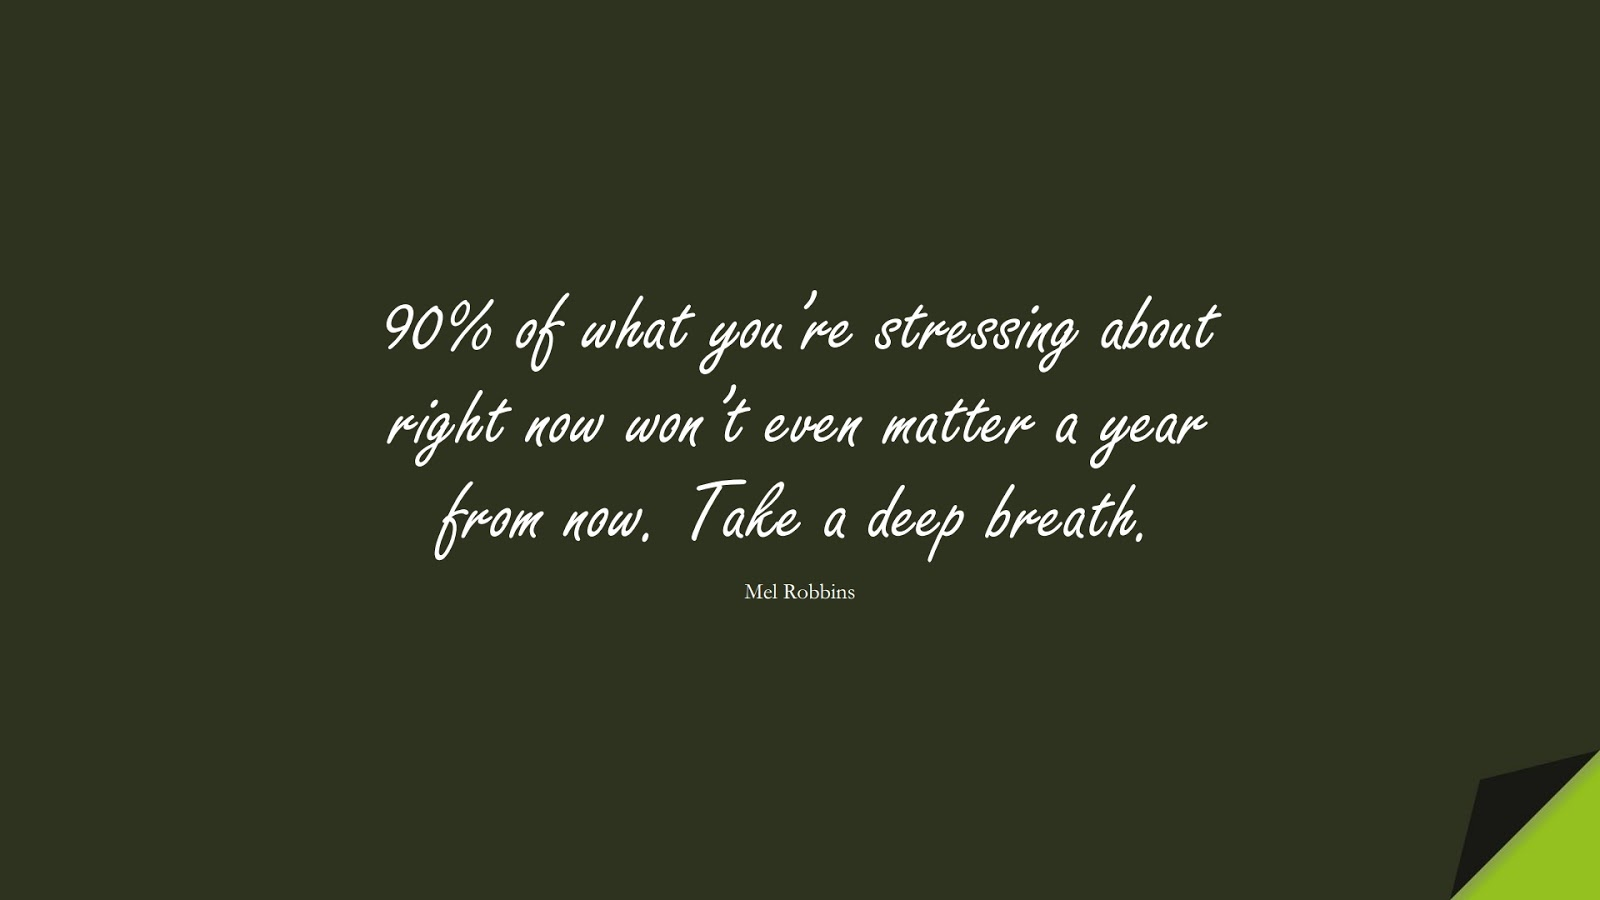 90% of what you're stressing about right now won't even matter a year from now. Take a deep breath. (Mel Robbins);  #StressQuotes